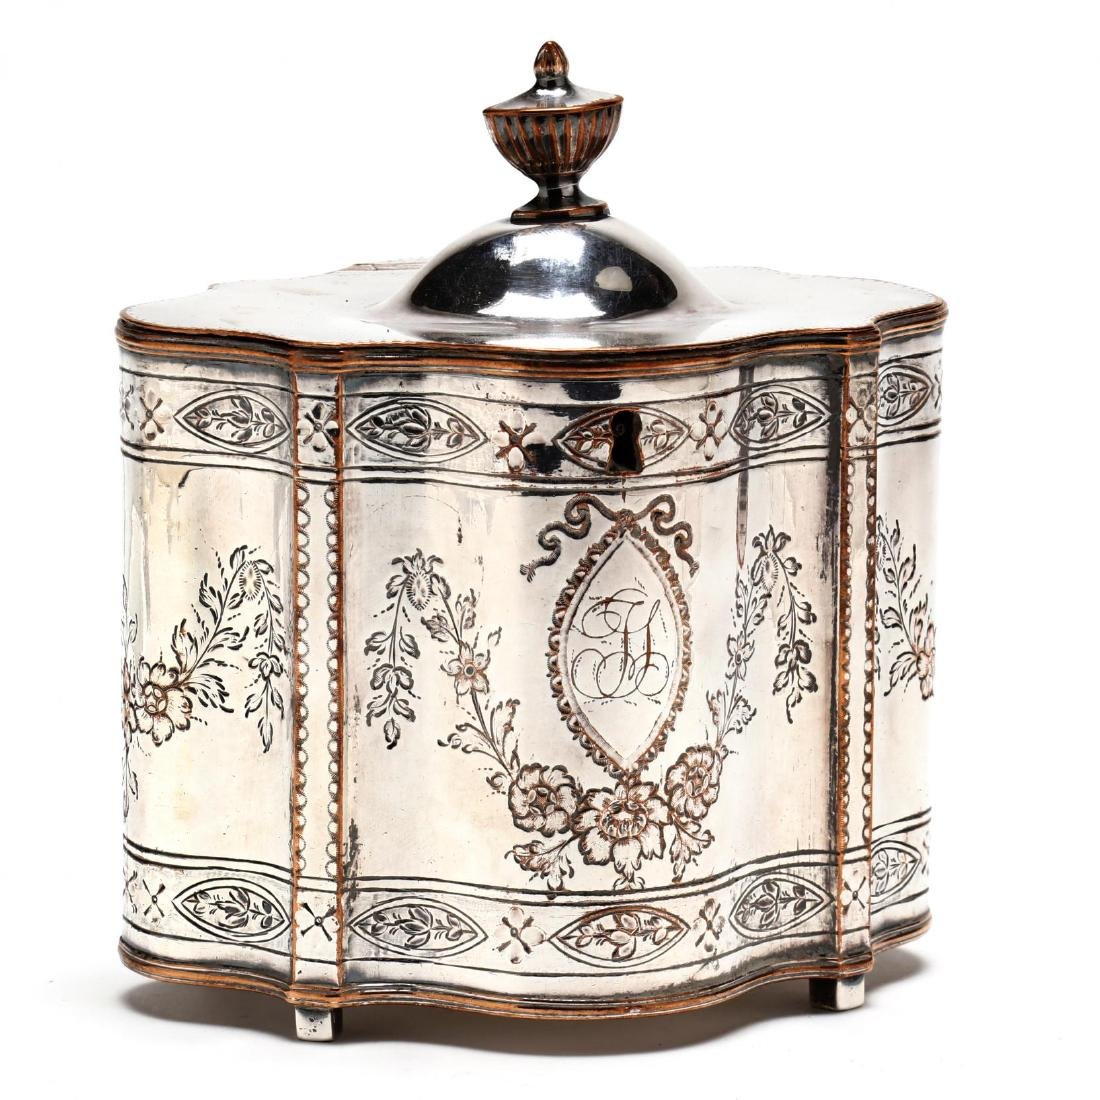 A George III Old Sheffield Plate Tea Caddy